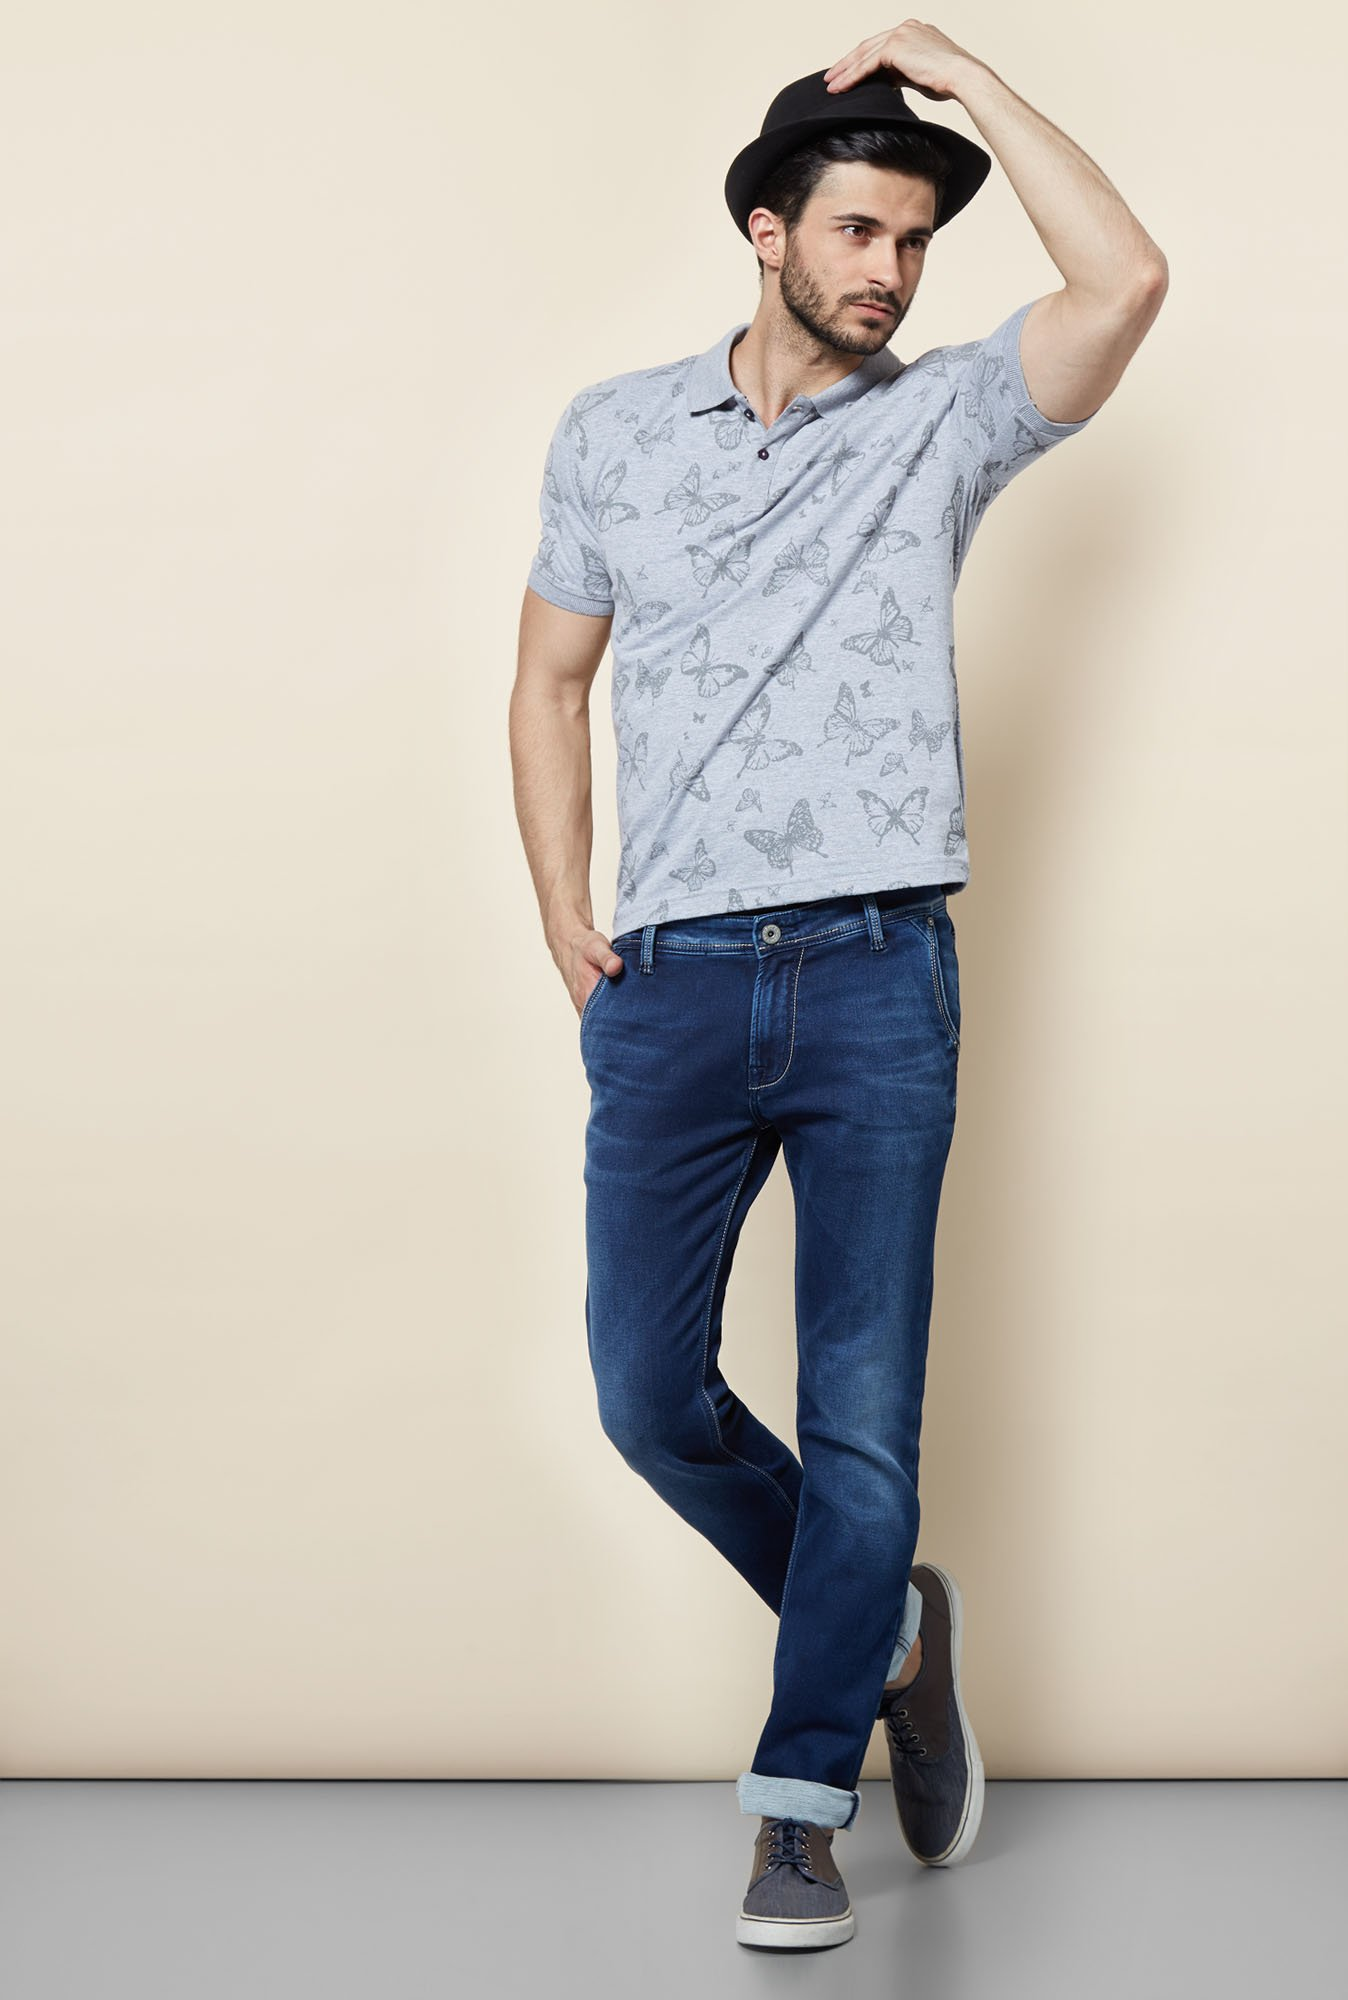 Easies Grey Polo T-Shirt